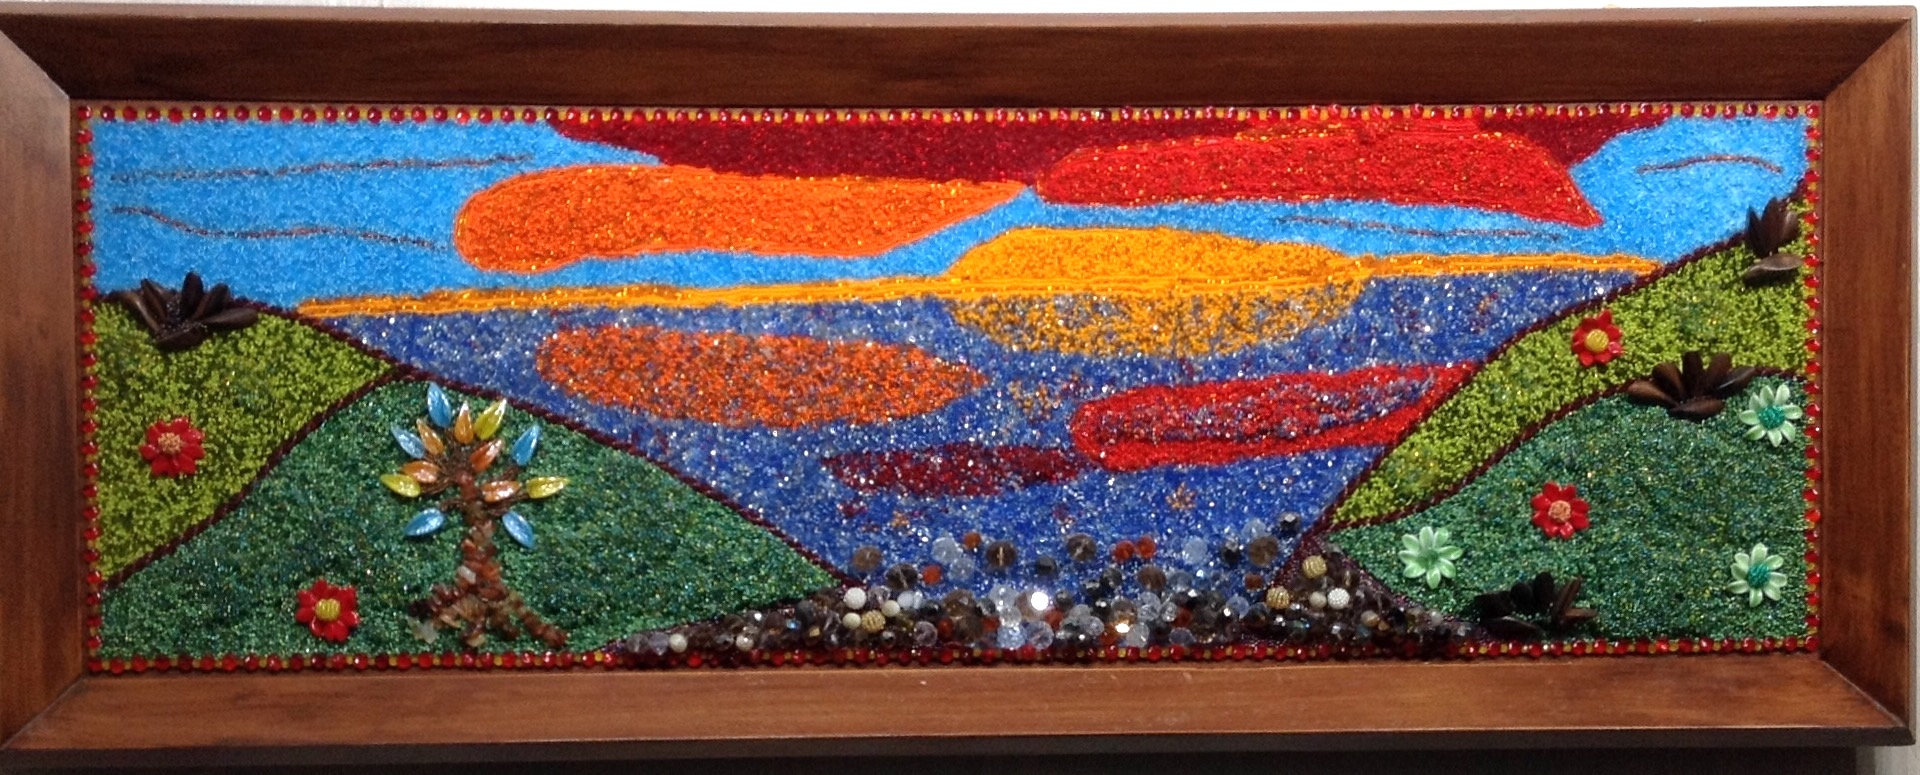 Stella Rogers-Sunset Over-Water-Bead Painting-39 1_2 x 15 1_4 inches